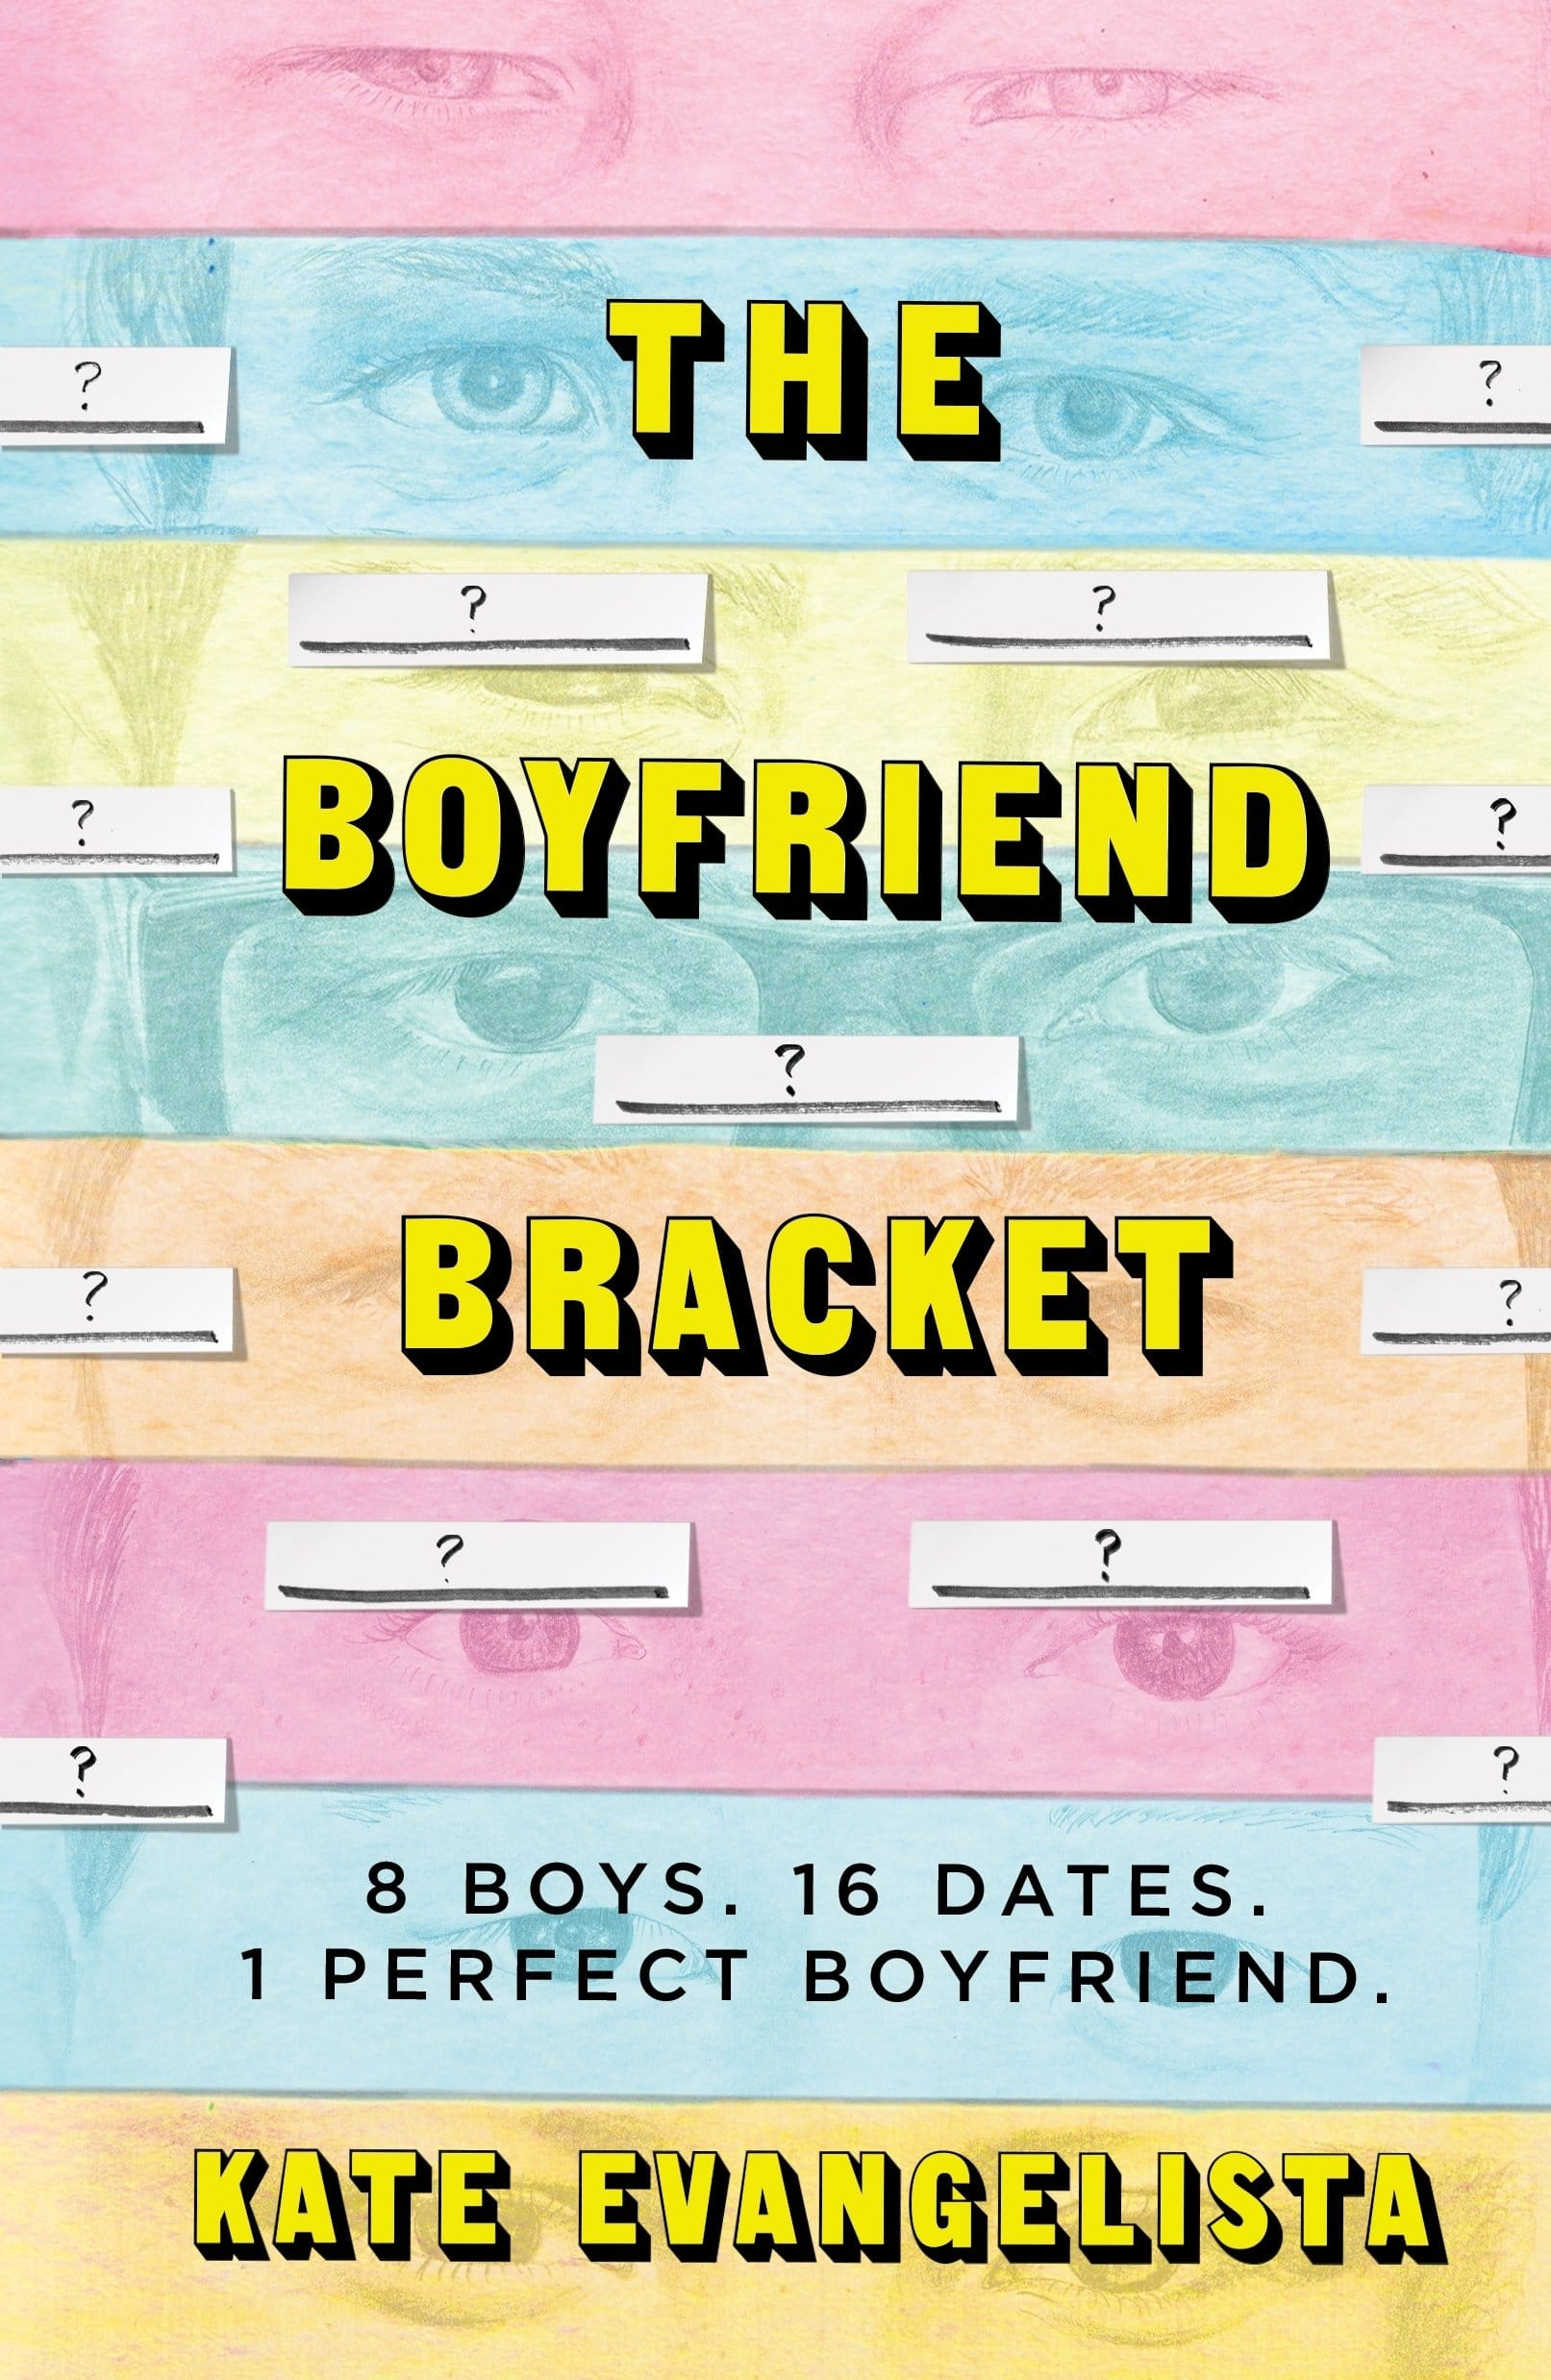 A Boyfriend but No Real Bracket | The Boyfriend Bracket by Kate Evangelista